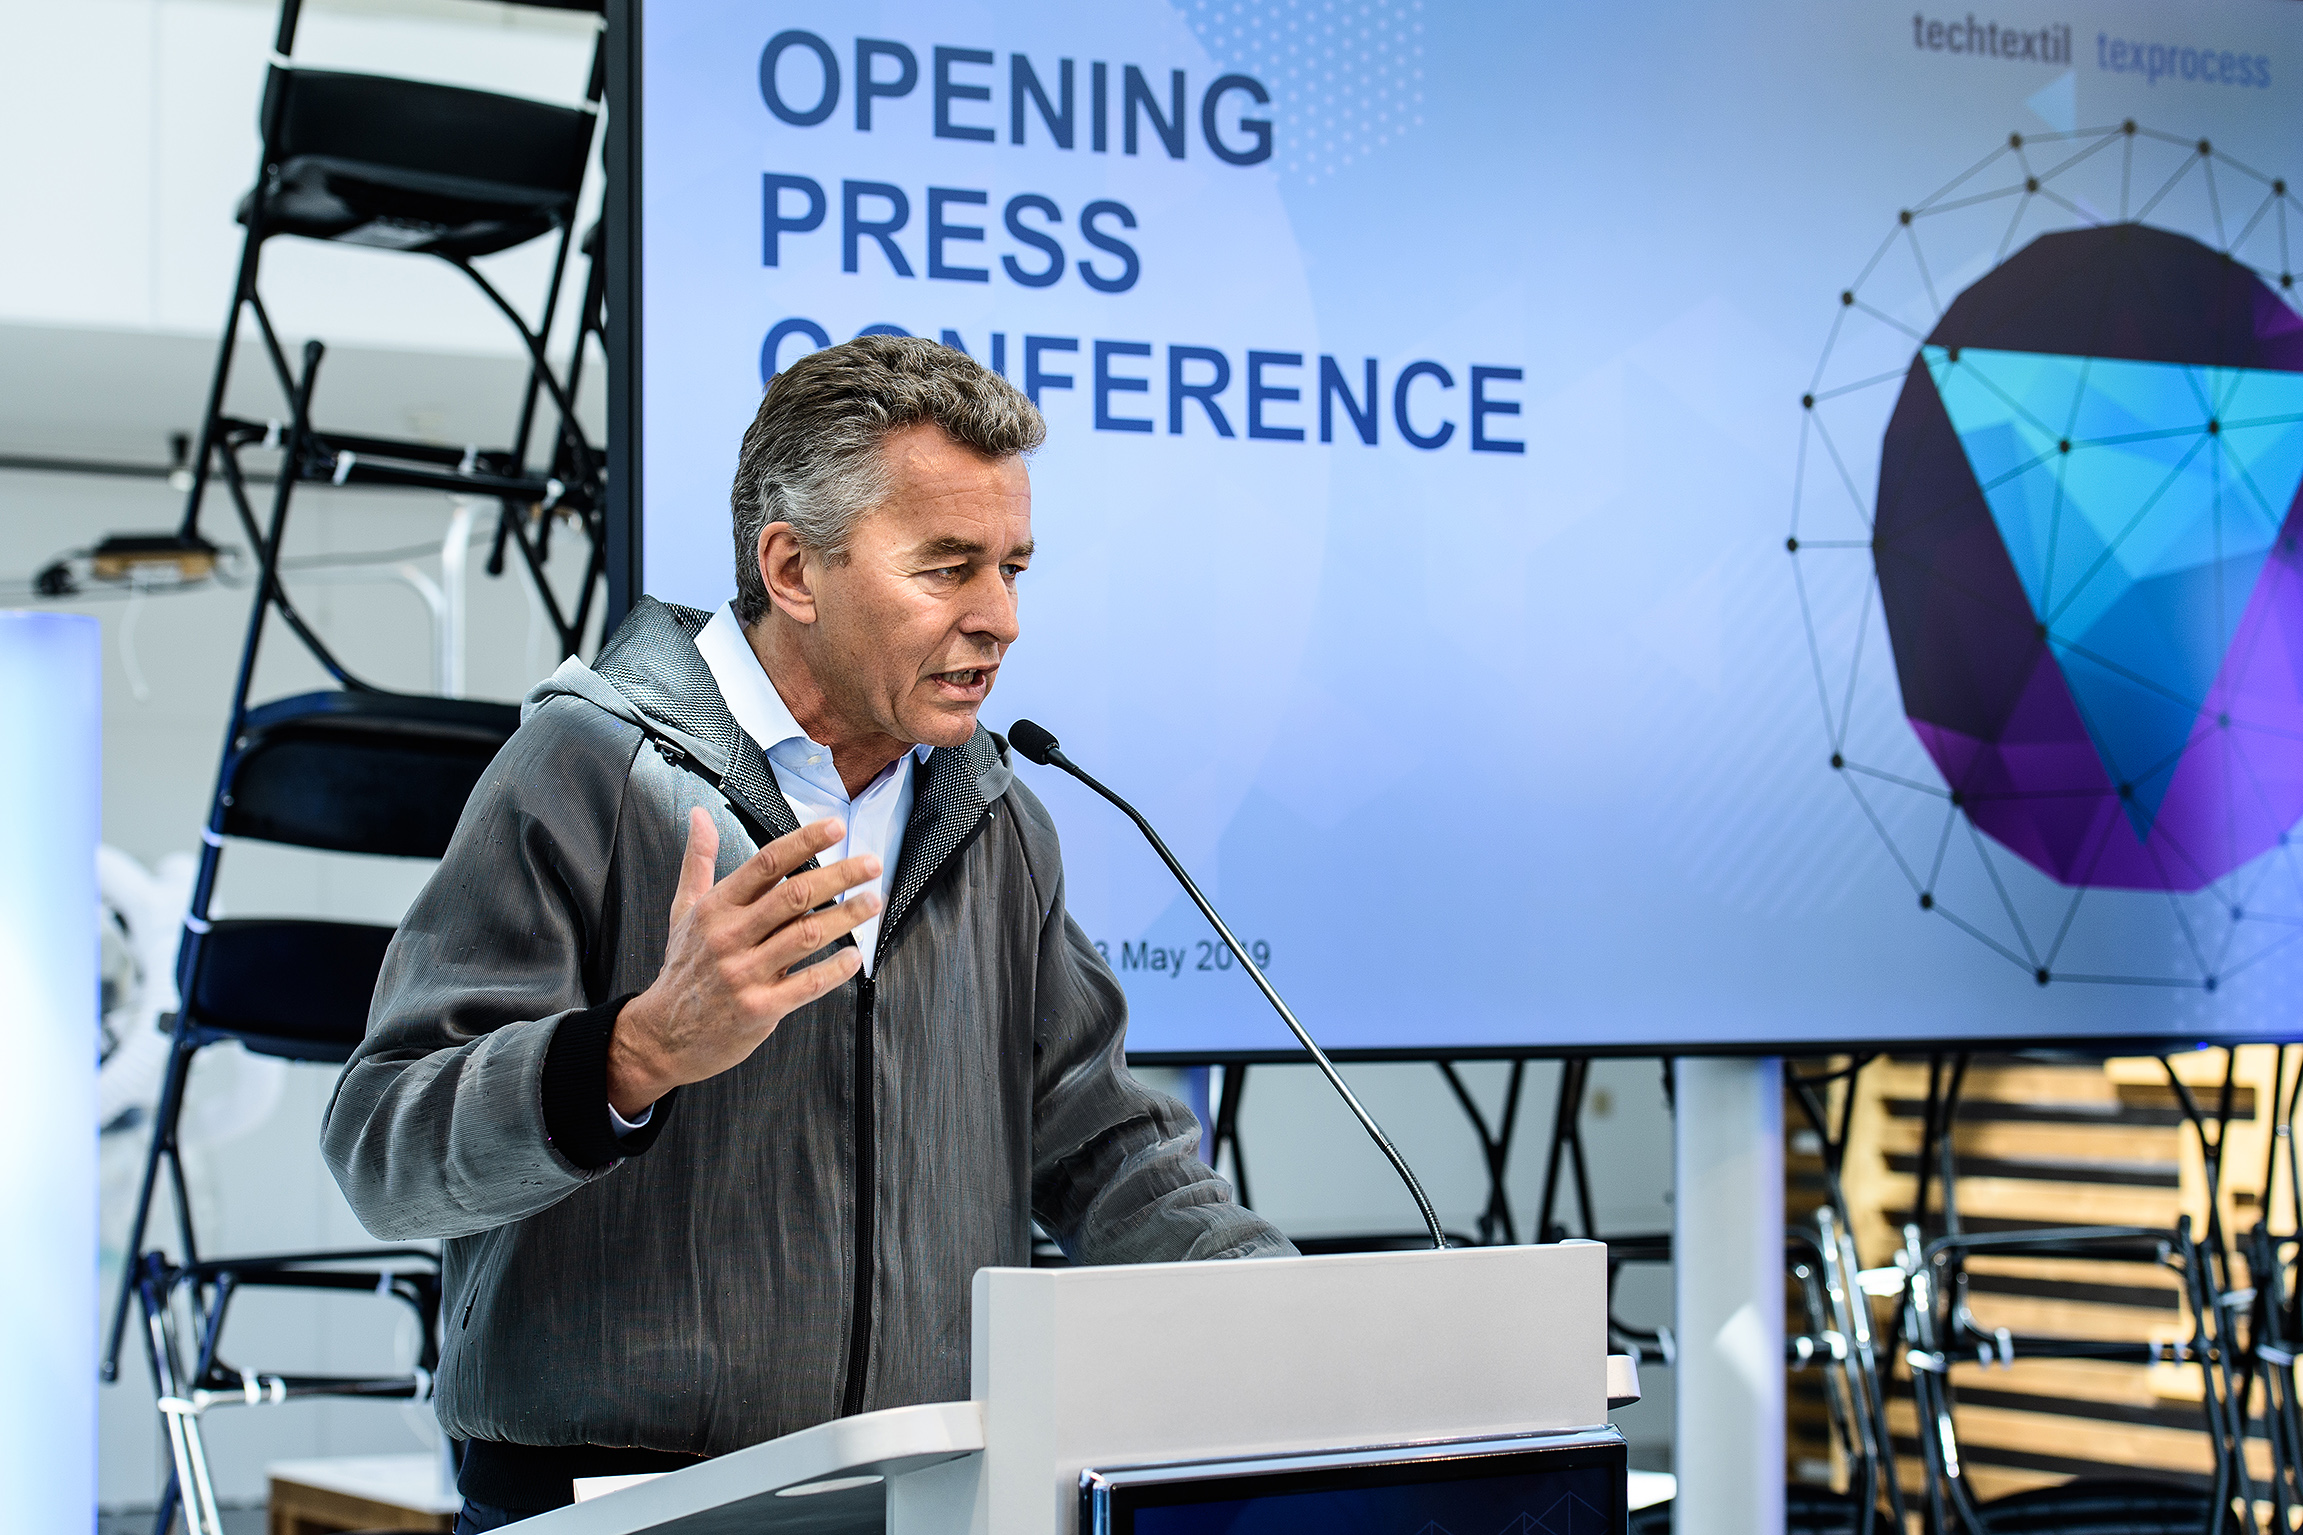 Detlef Braun, Member of the Executive Board/ Functional Jacket. Photo: Messe Frankfurt Exhibition GmbH/ Pietro Sutera.